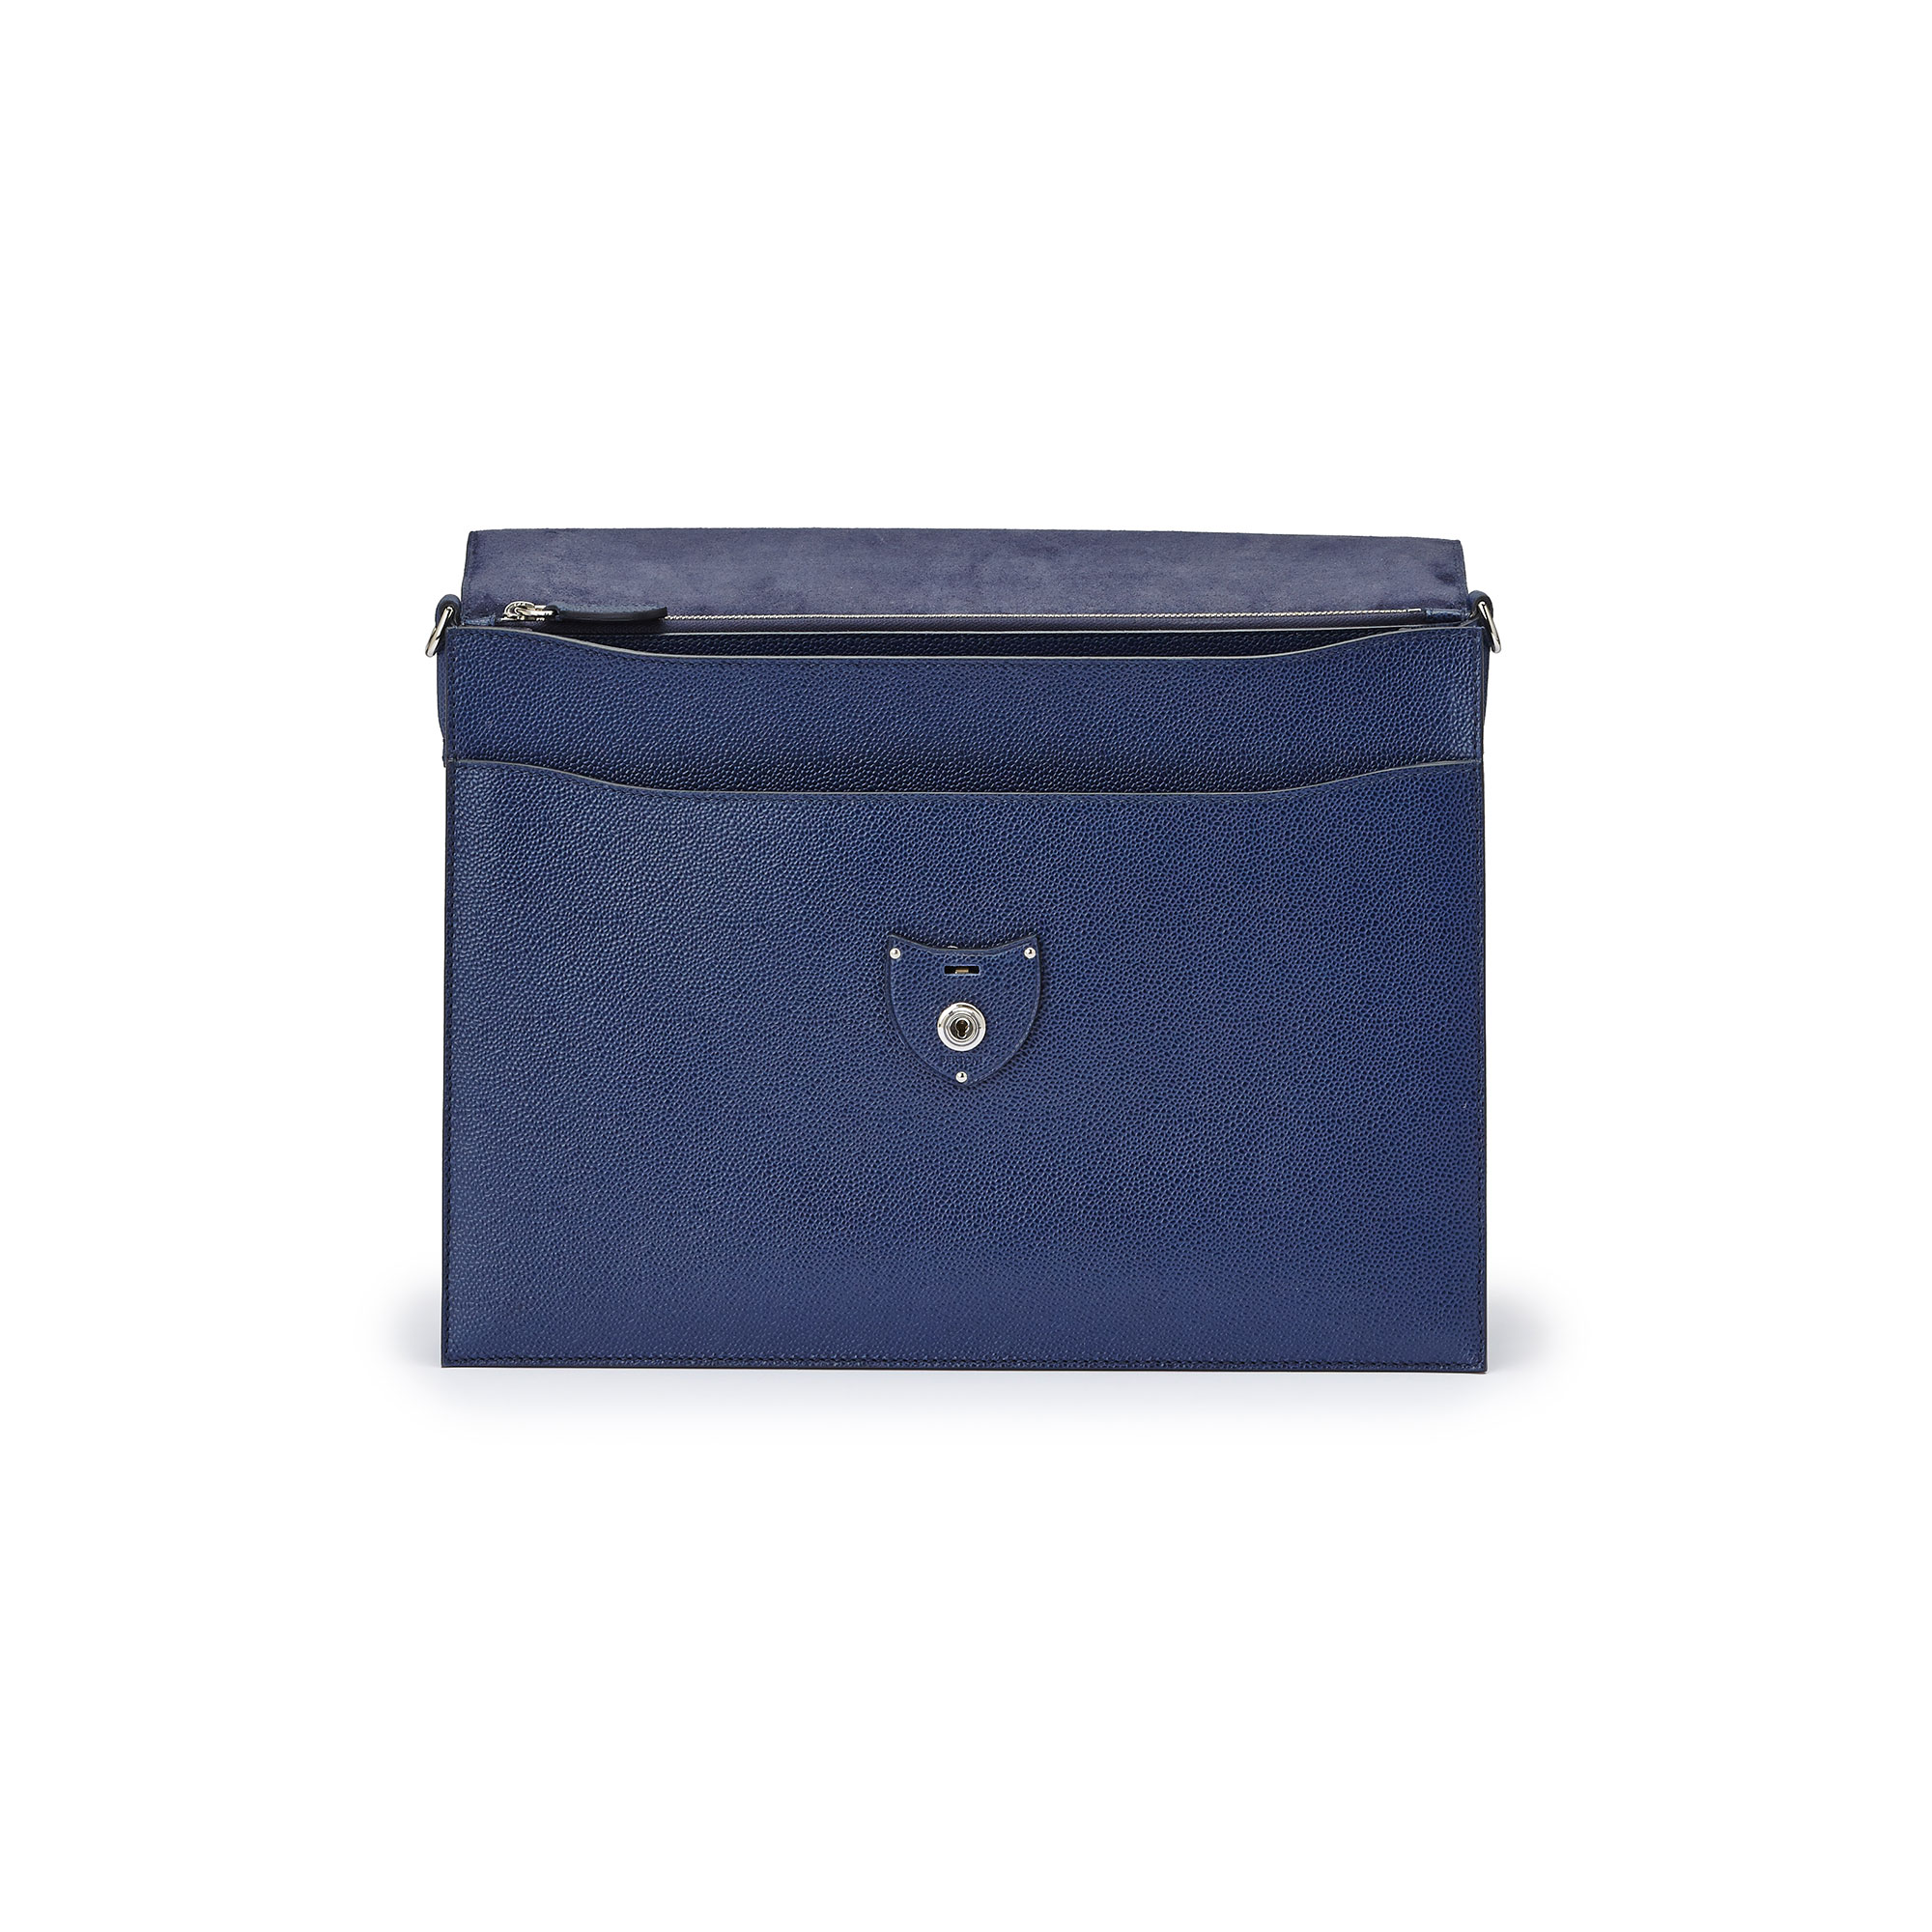 The Navy grain calf Double Gusset Briefcase by Bertoni 1949 05